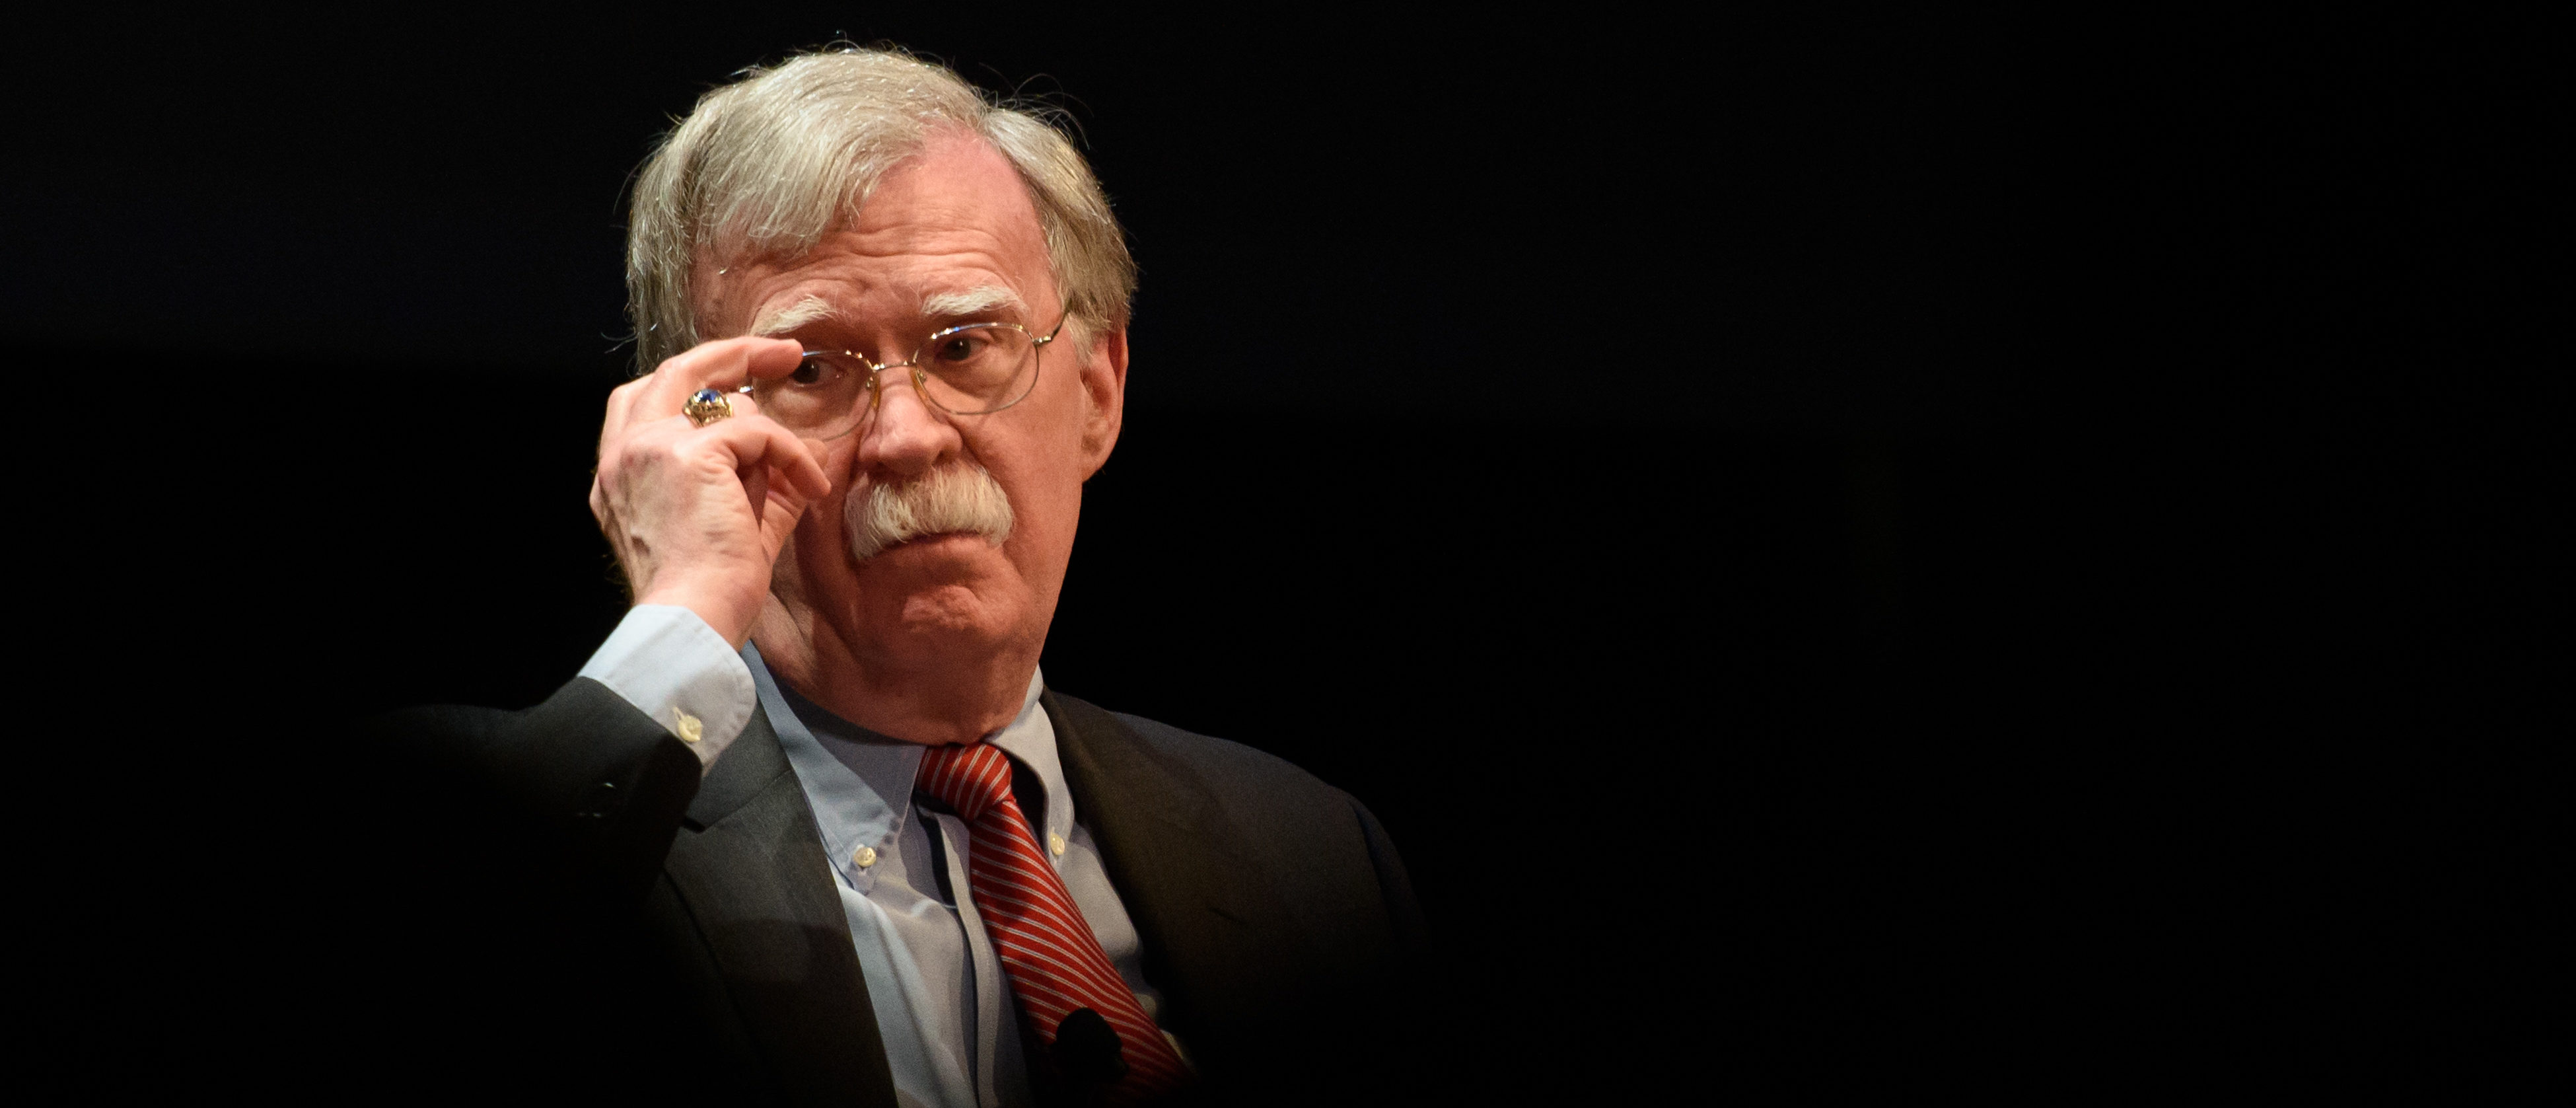 White House: 'No One Is Trying To Censor' John Bolton's Book